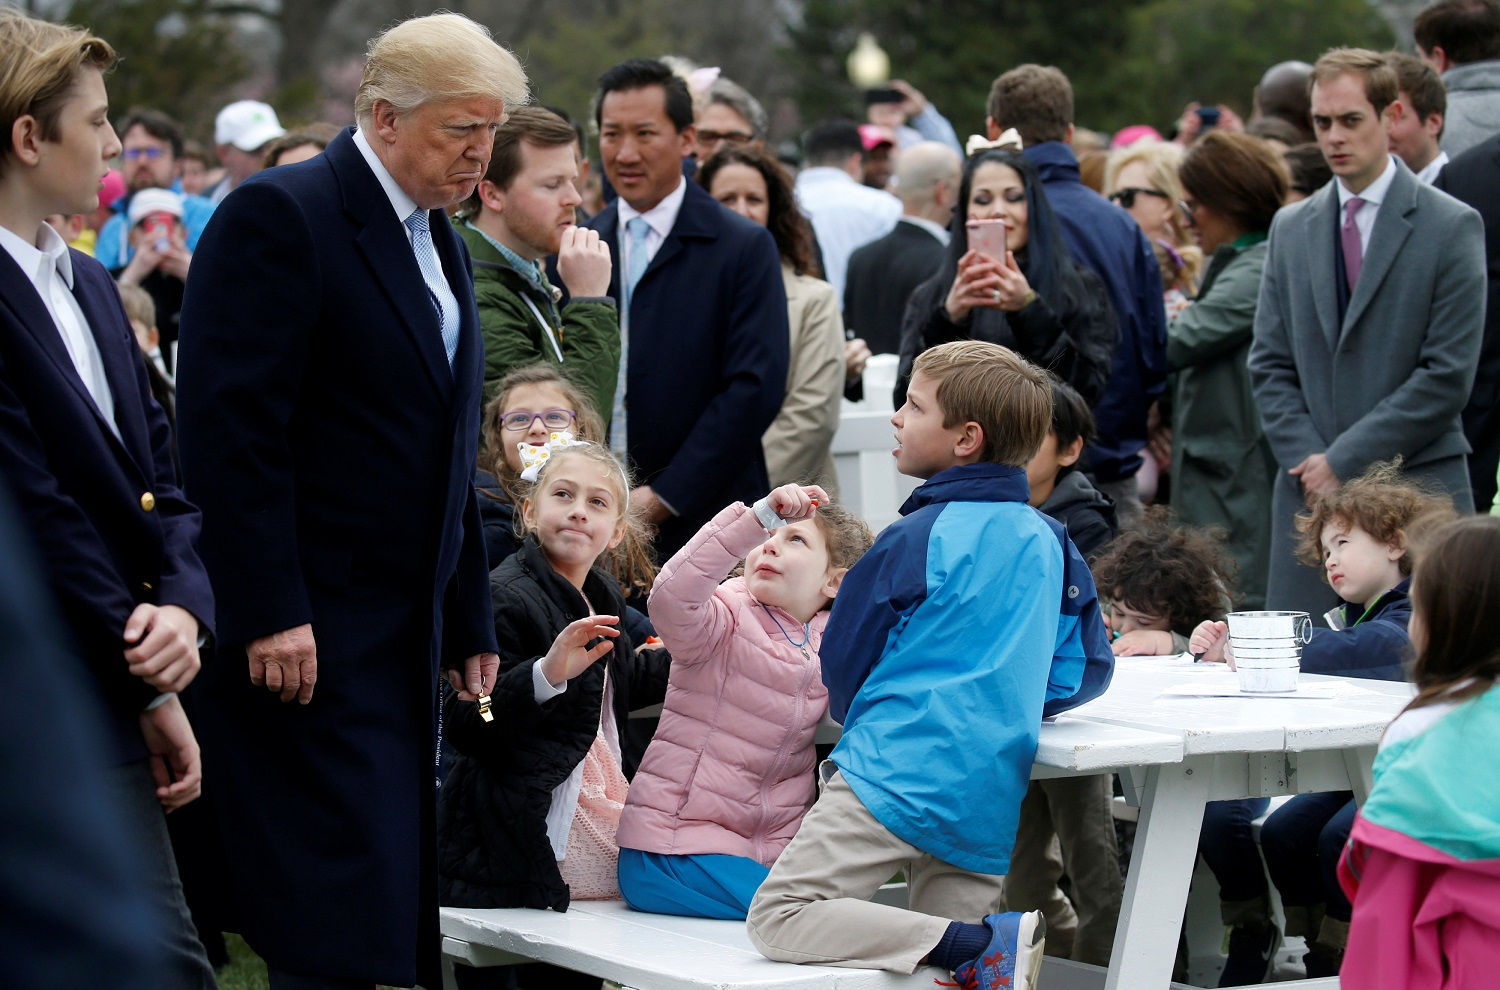 U.S. President Donald Trump greets children during the annual White House Easter Egg Roll on the South Lawn of the White House in Washington, April 2, 2018. REUTERS/Leah Millis